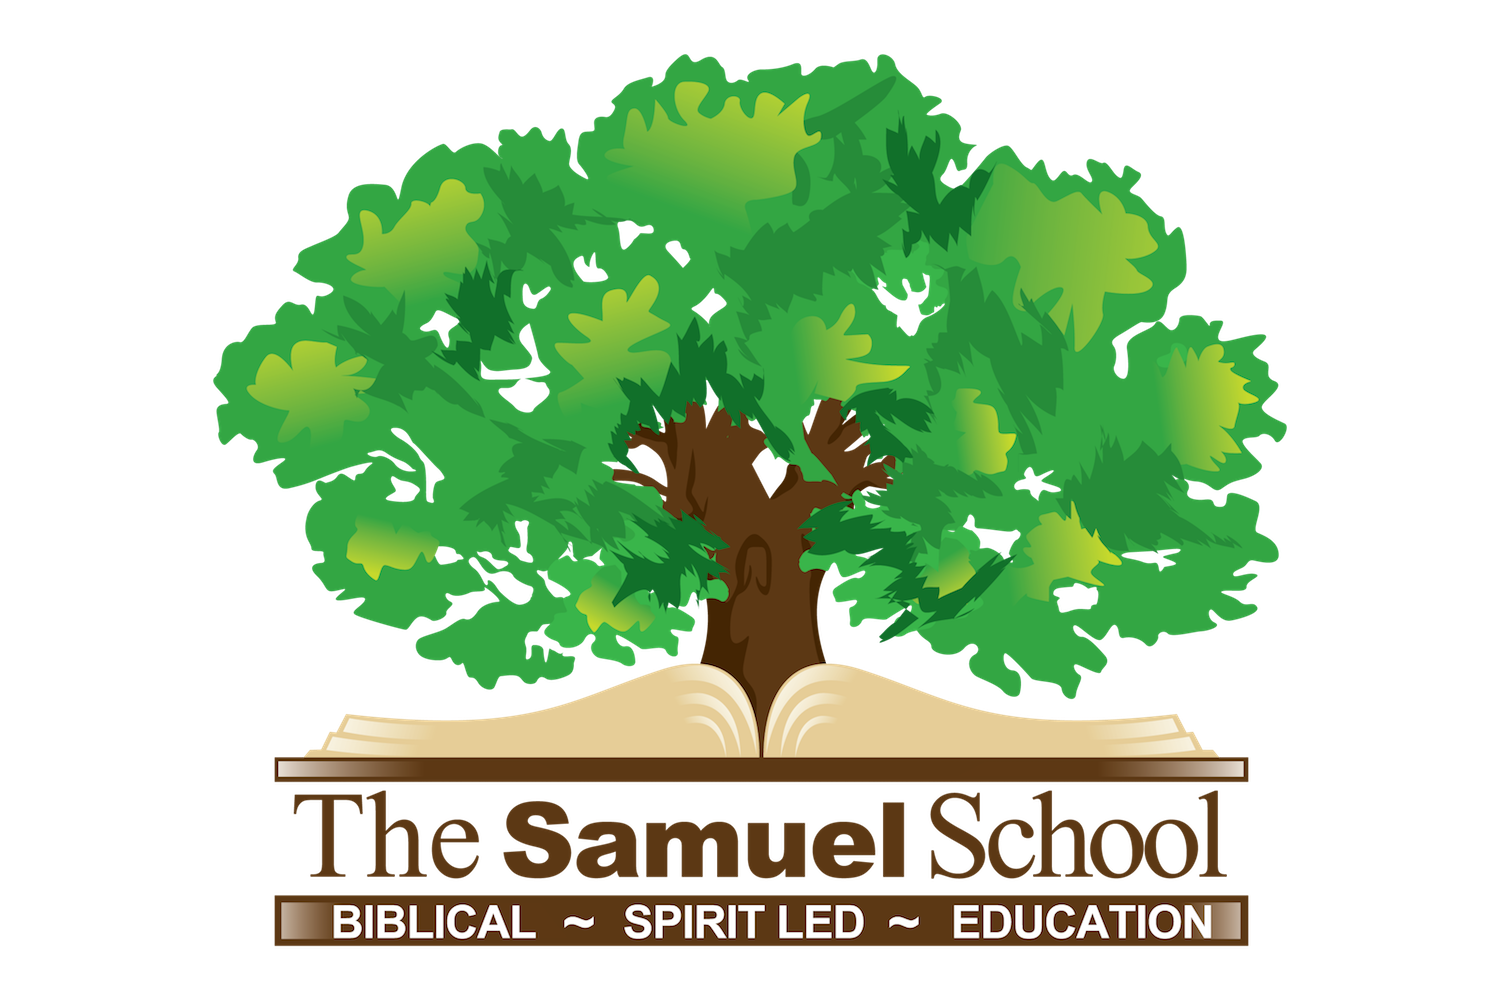 The Samuel School